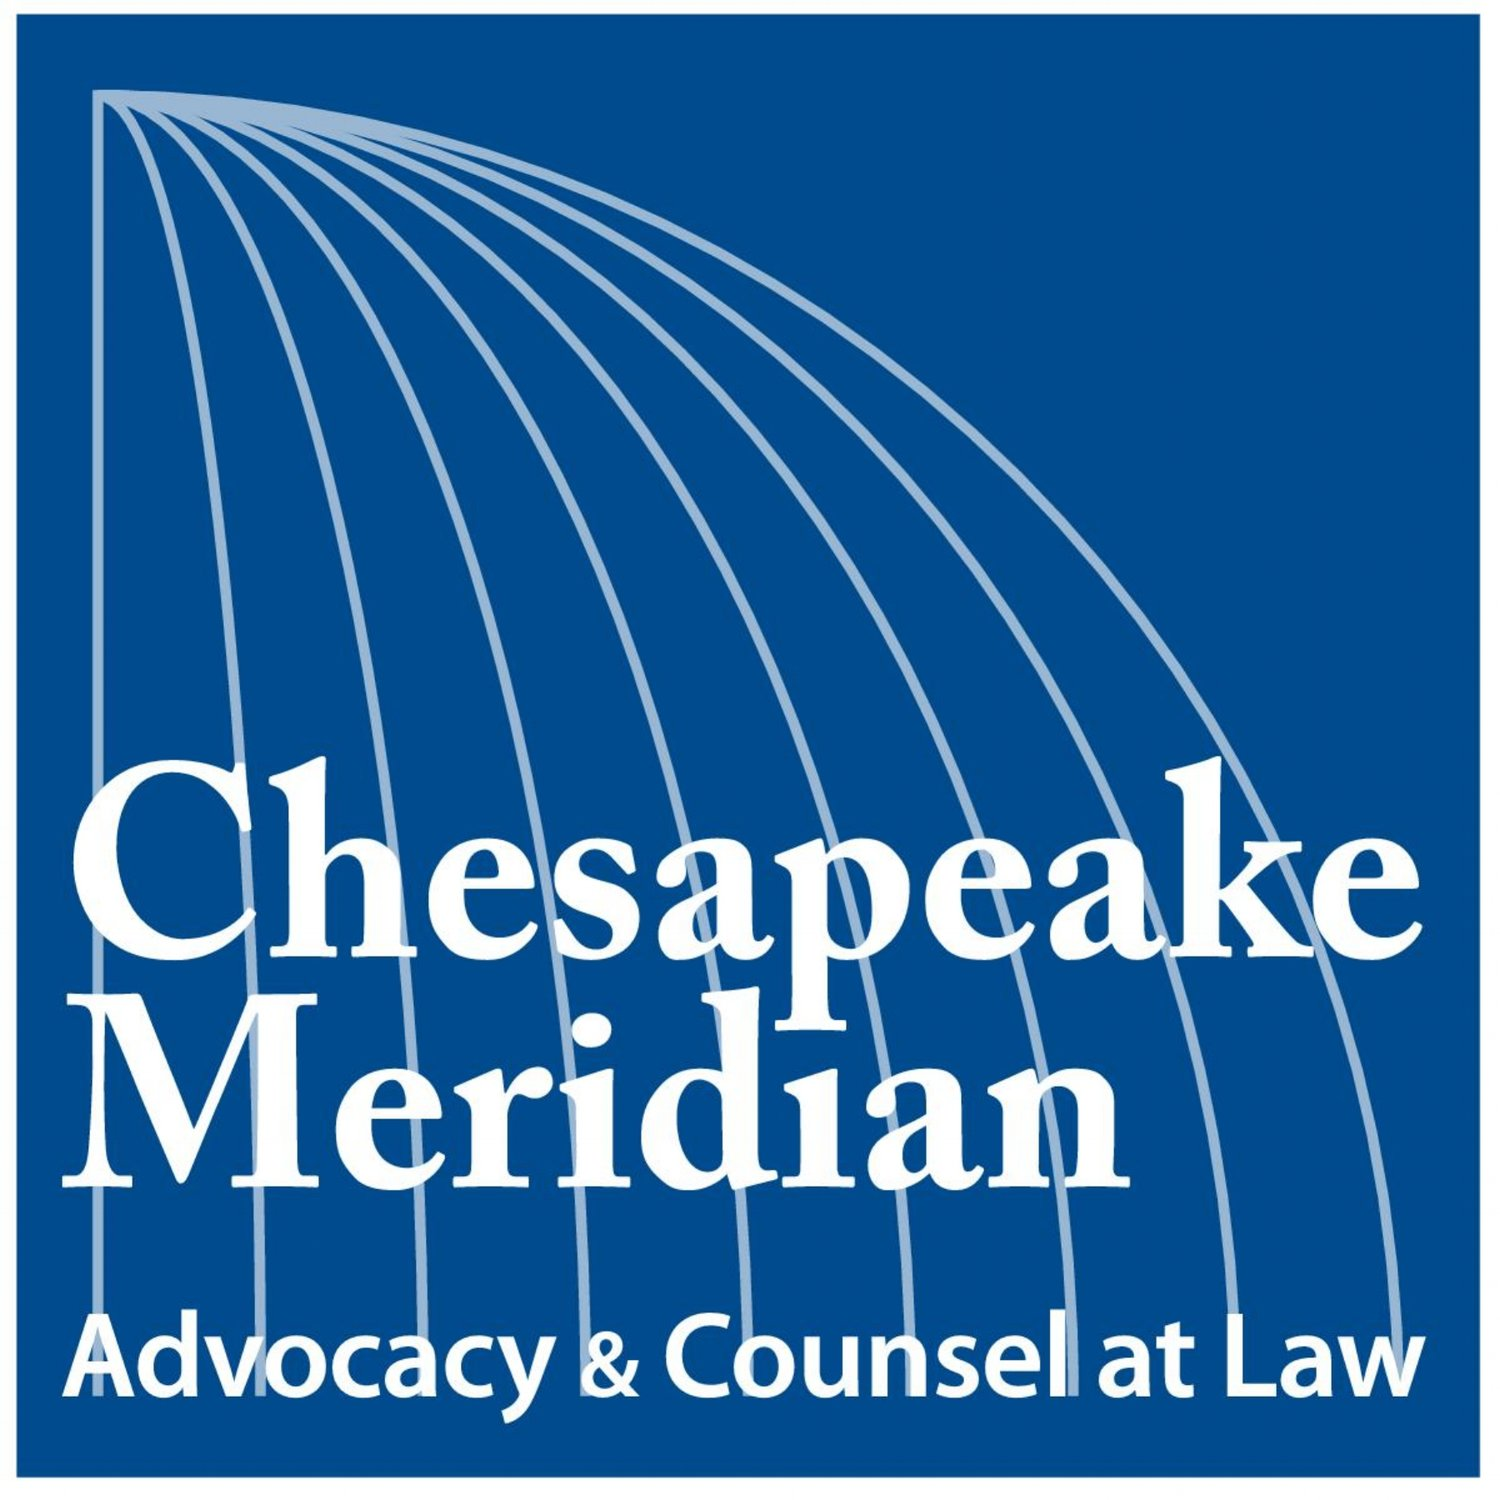 Chesapeake Meridian